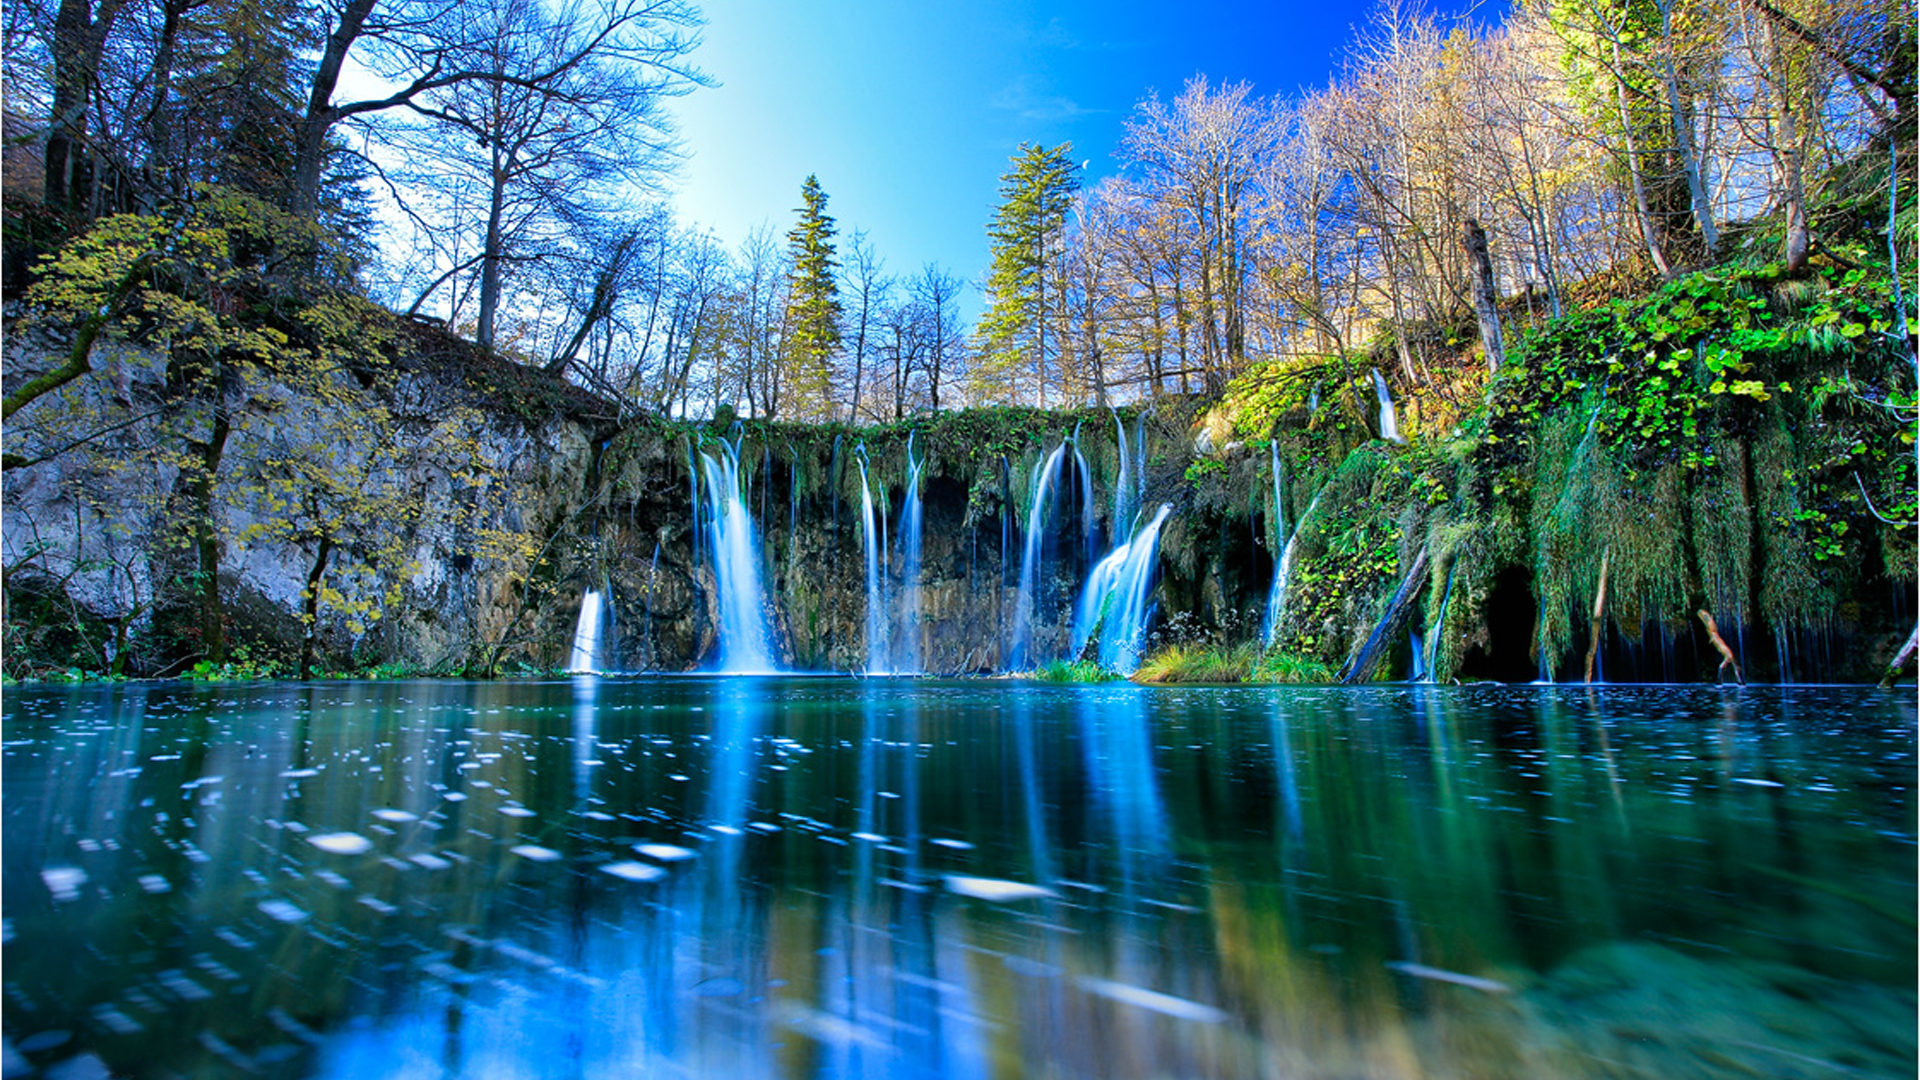 Hd Wallpapers Cars For Iphone Plitvice Lakes National Park Croatia 5231947